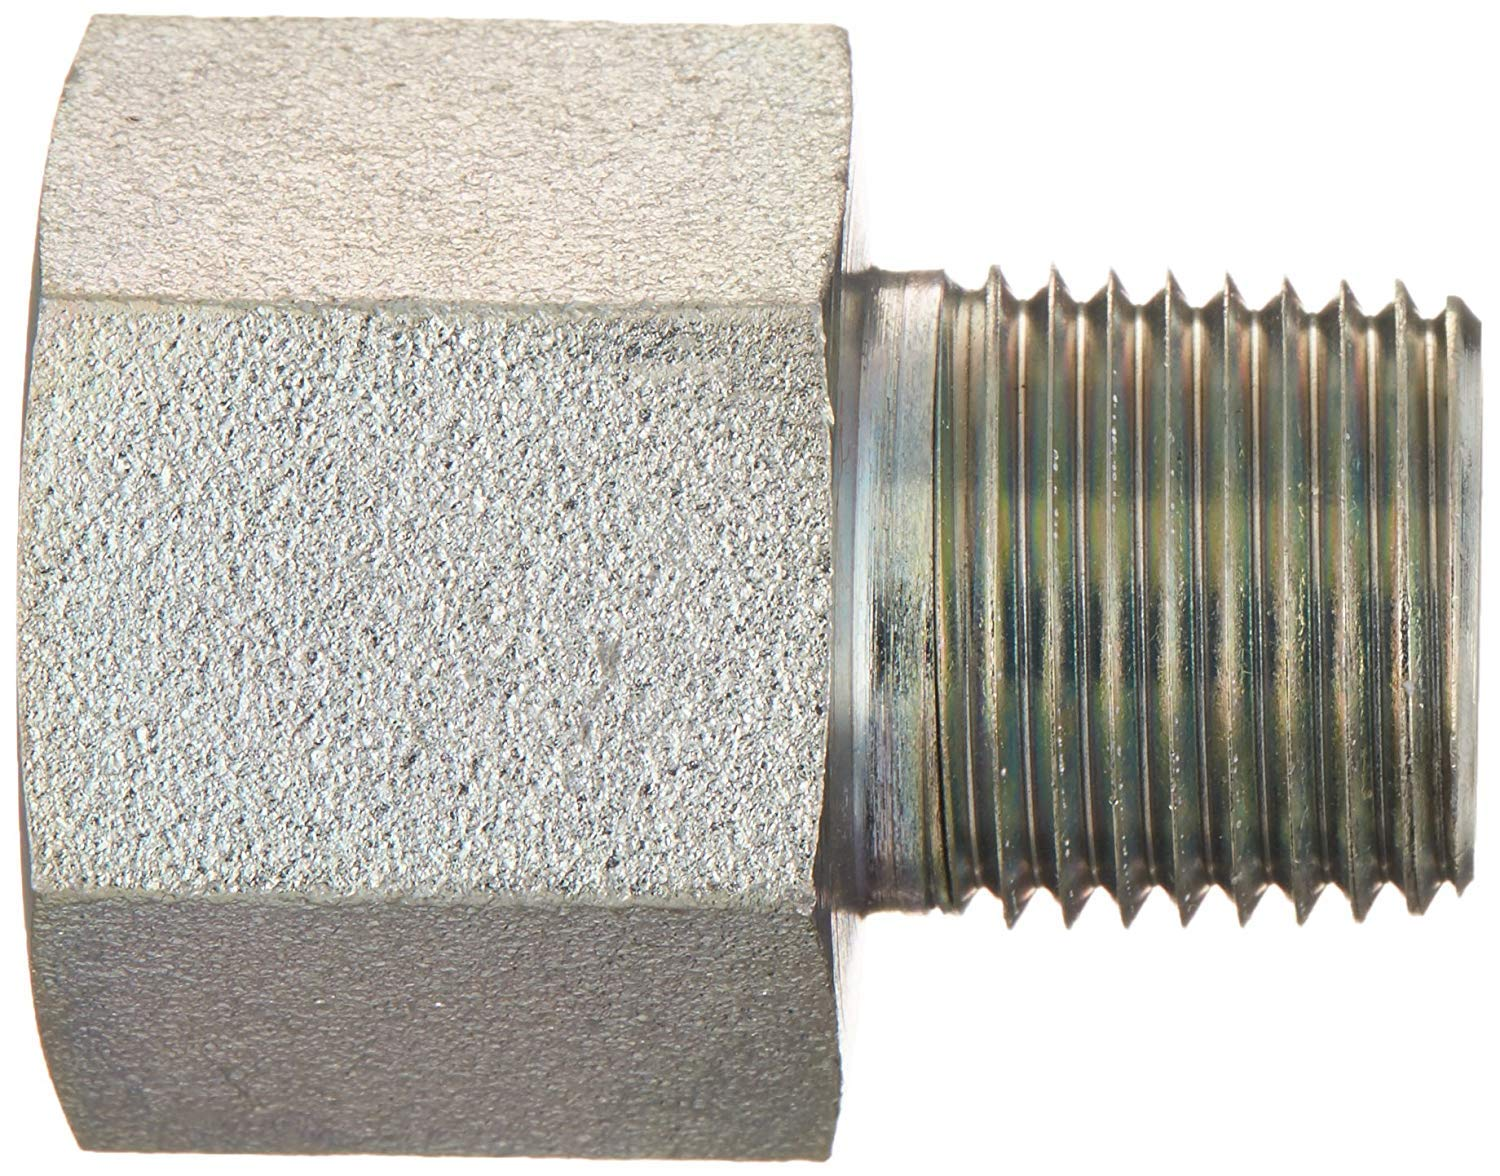 6404-06-08 Hydraulic Fitting 3//8 Female BOSS X 1//2 Male Pipe Carbon Steel